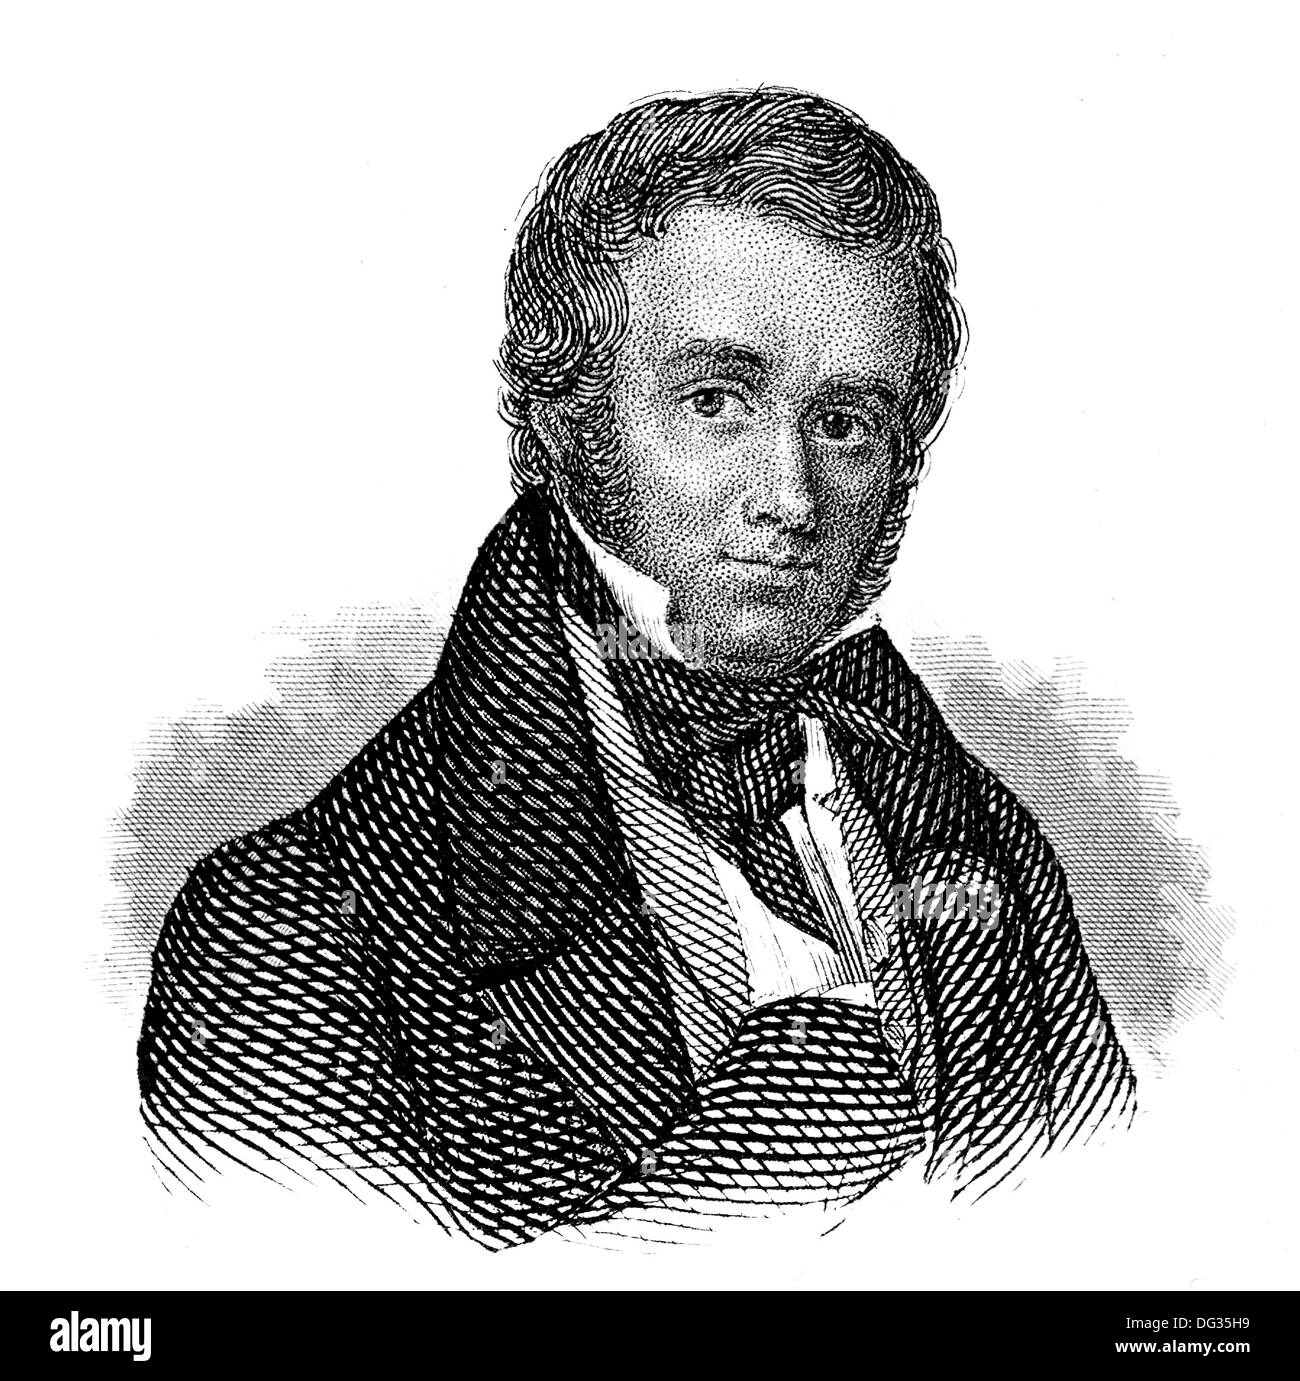 Victor Cousin, 1792-1867, a French philosopher, Scottish Common Sense Realism - Stock Image